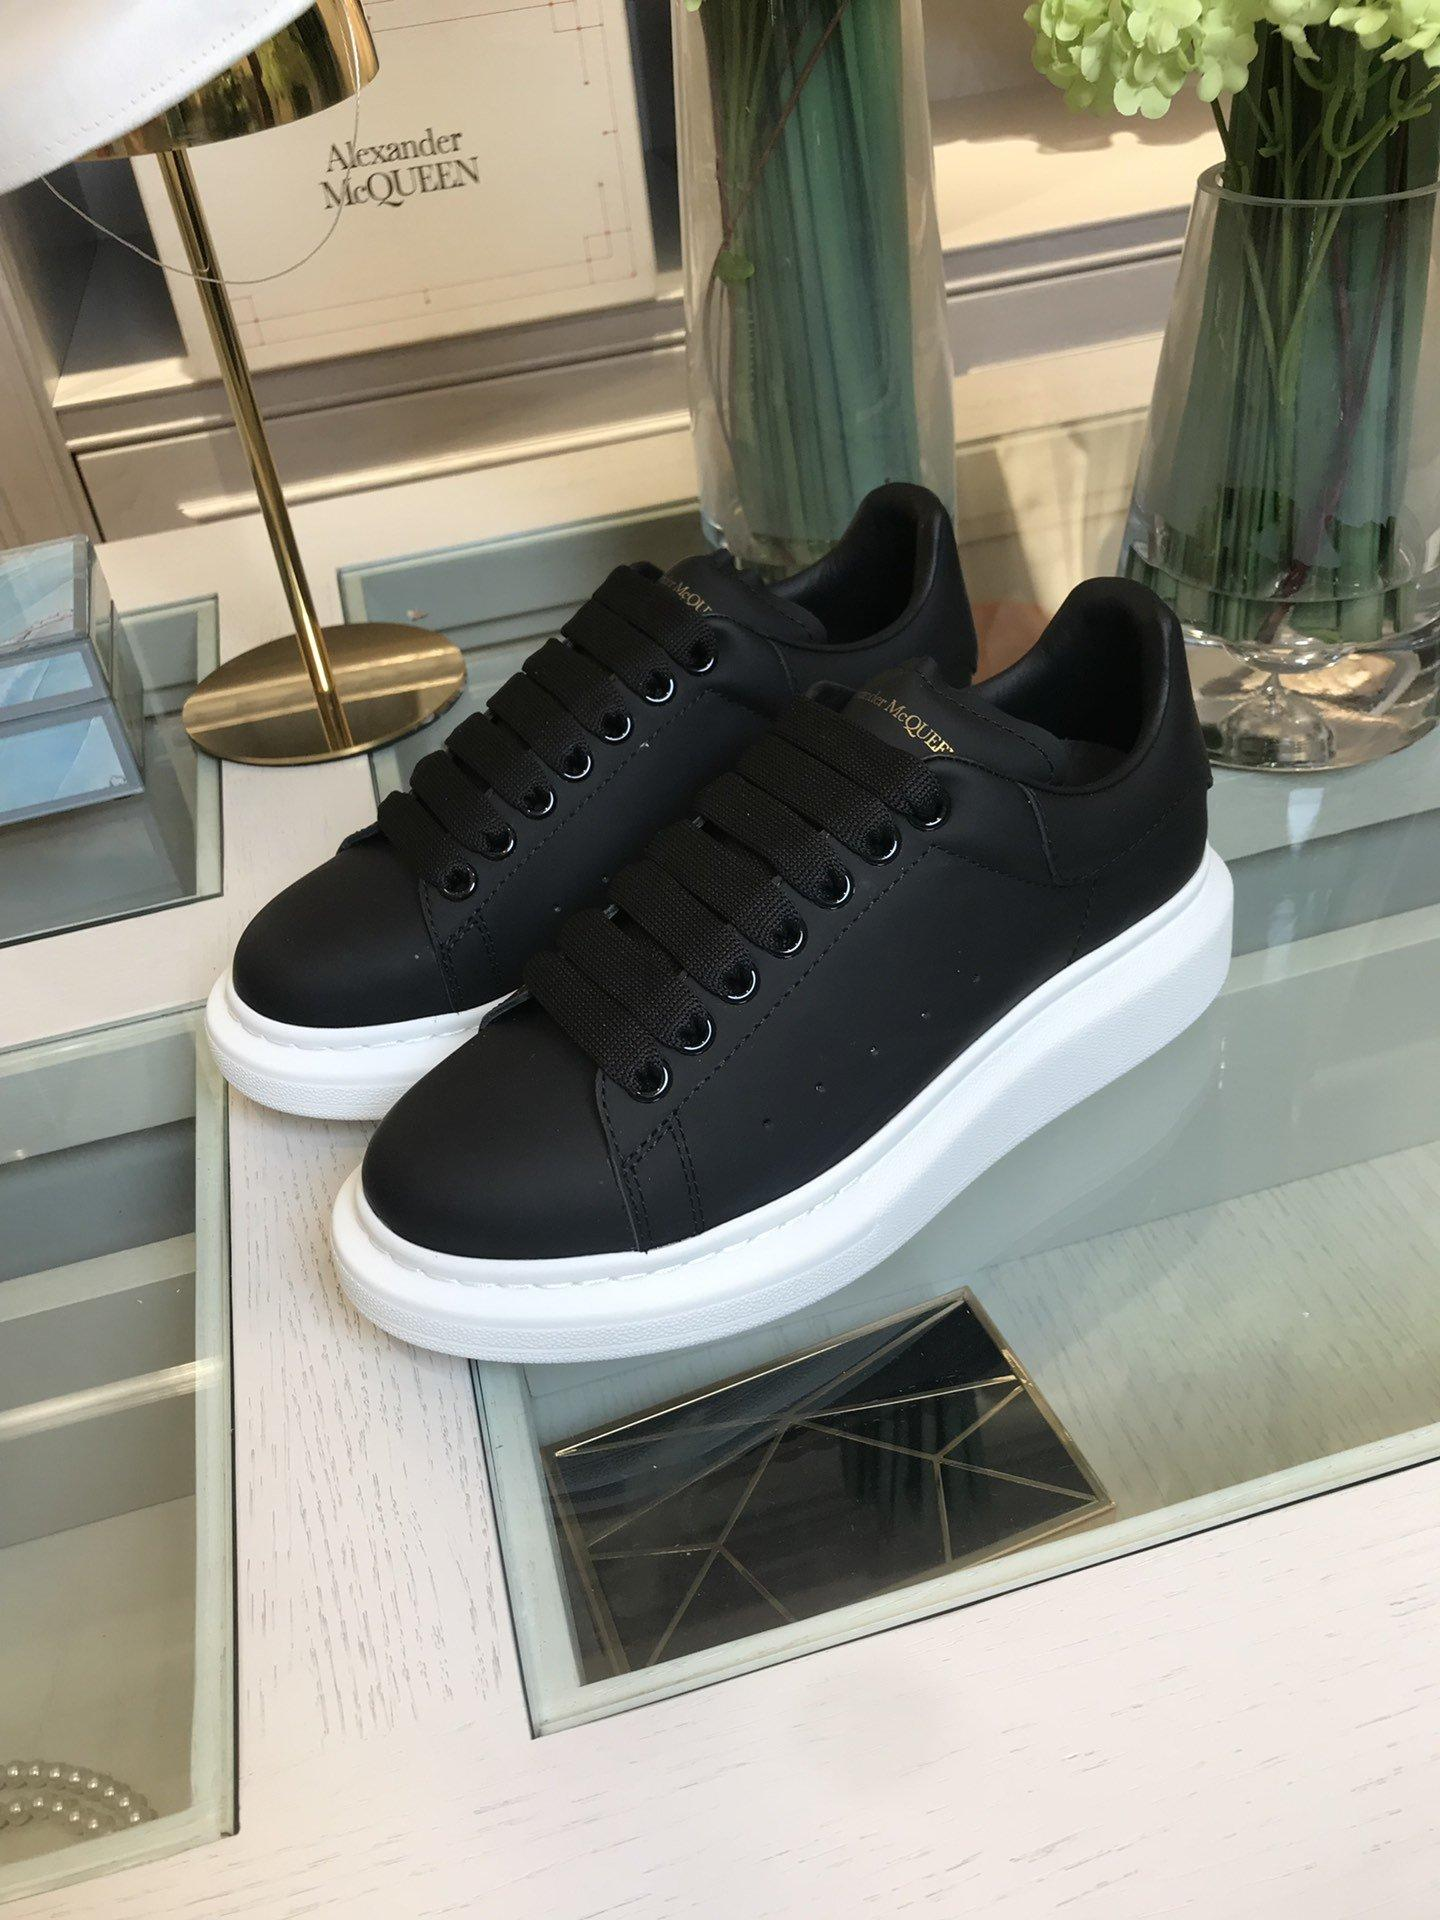 Wholesale high quality McQueen white shoes shiny leather lace up casual shoes 14